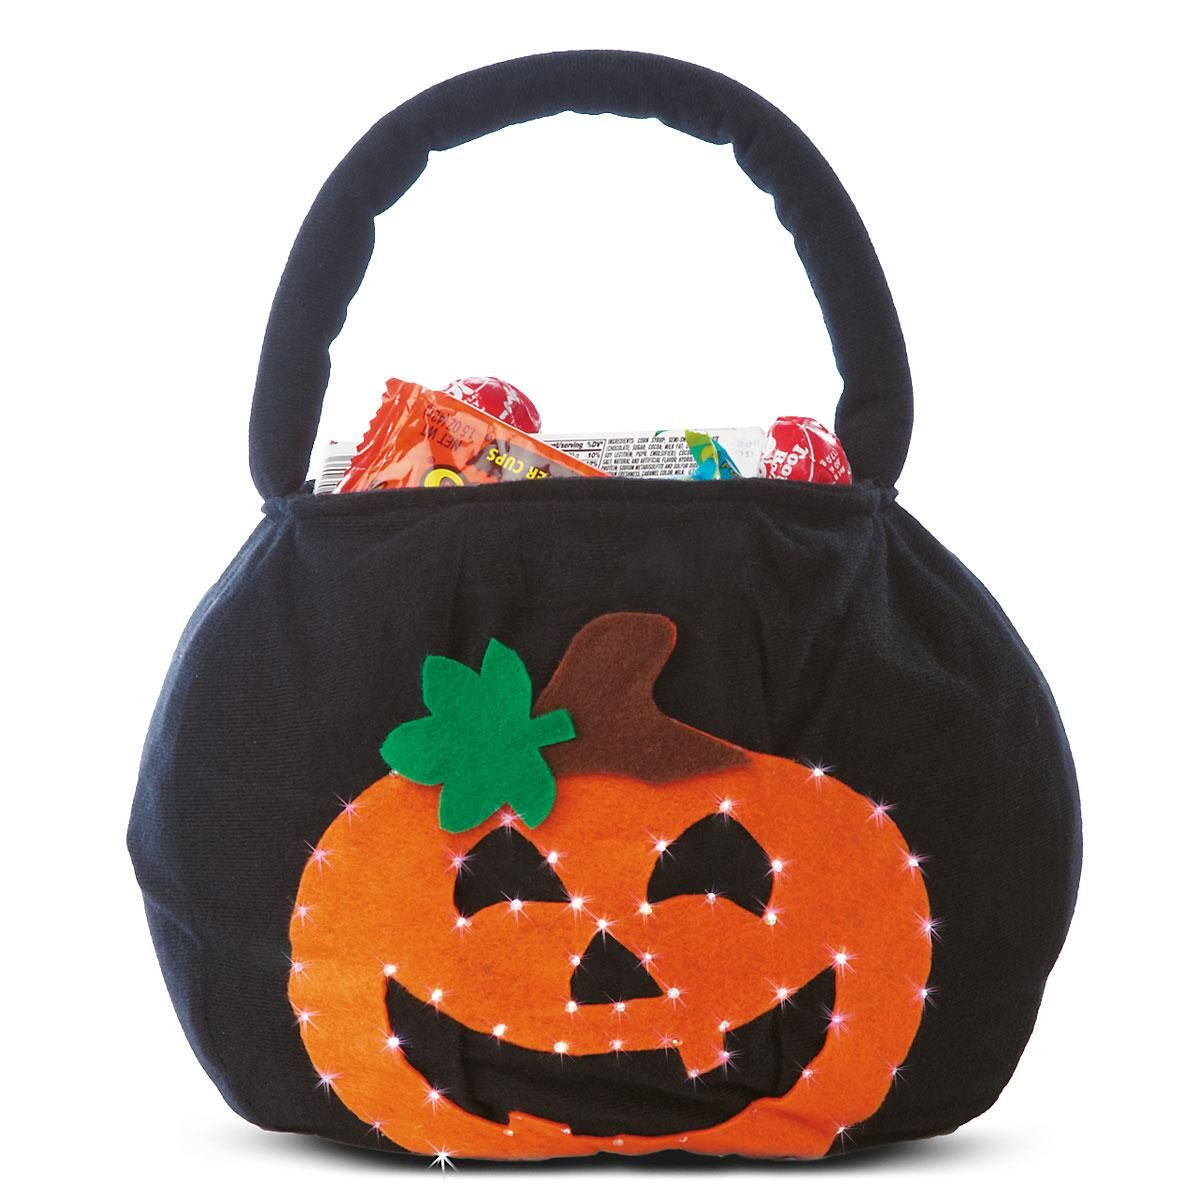 Blinking Light Up Halloween Treat Bags